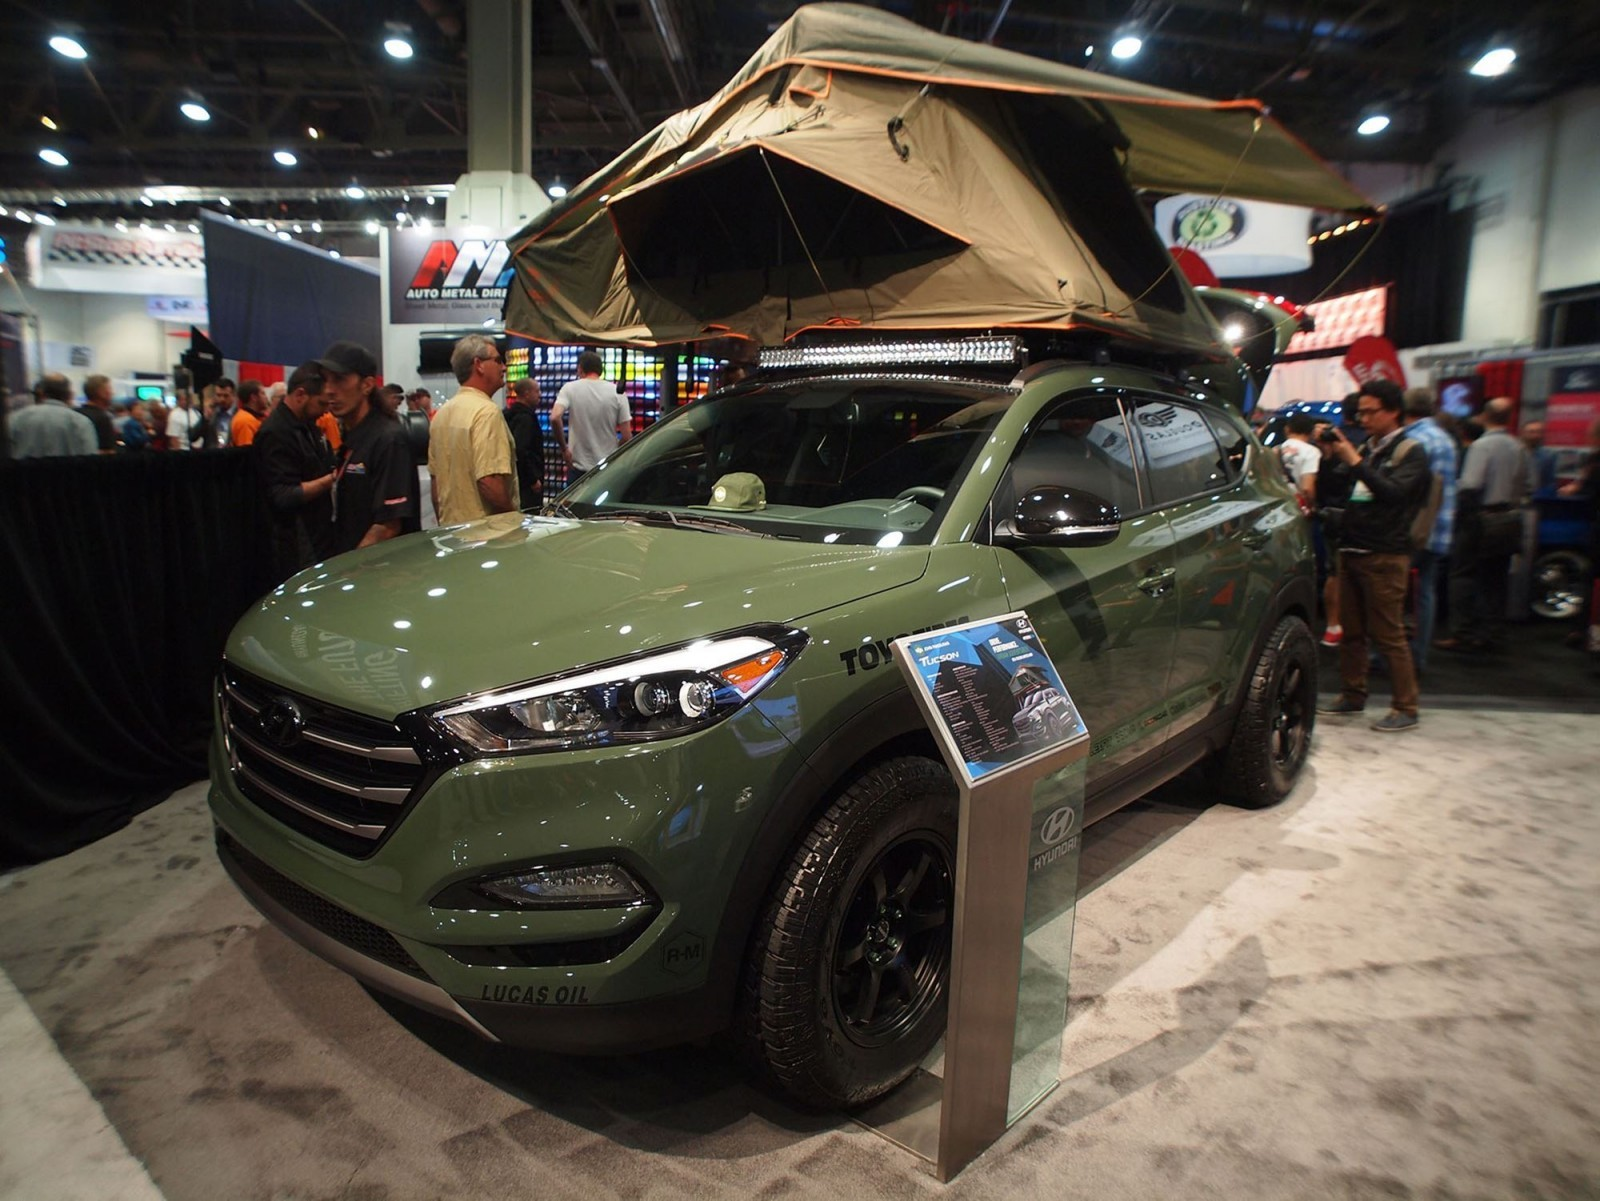 2016 Hyundai Tucson Adventuremobile By John Pangilinan